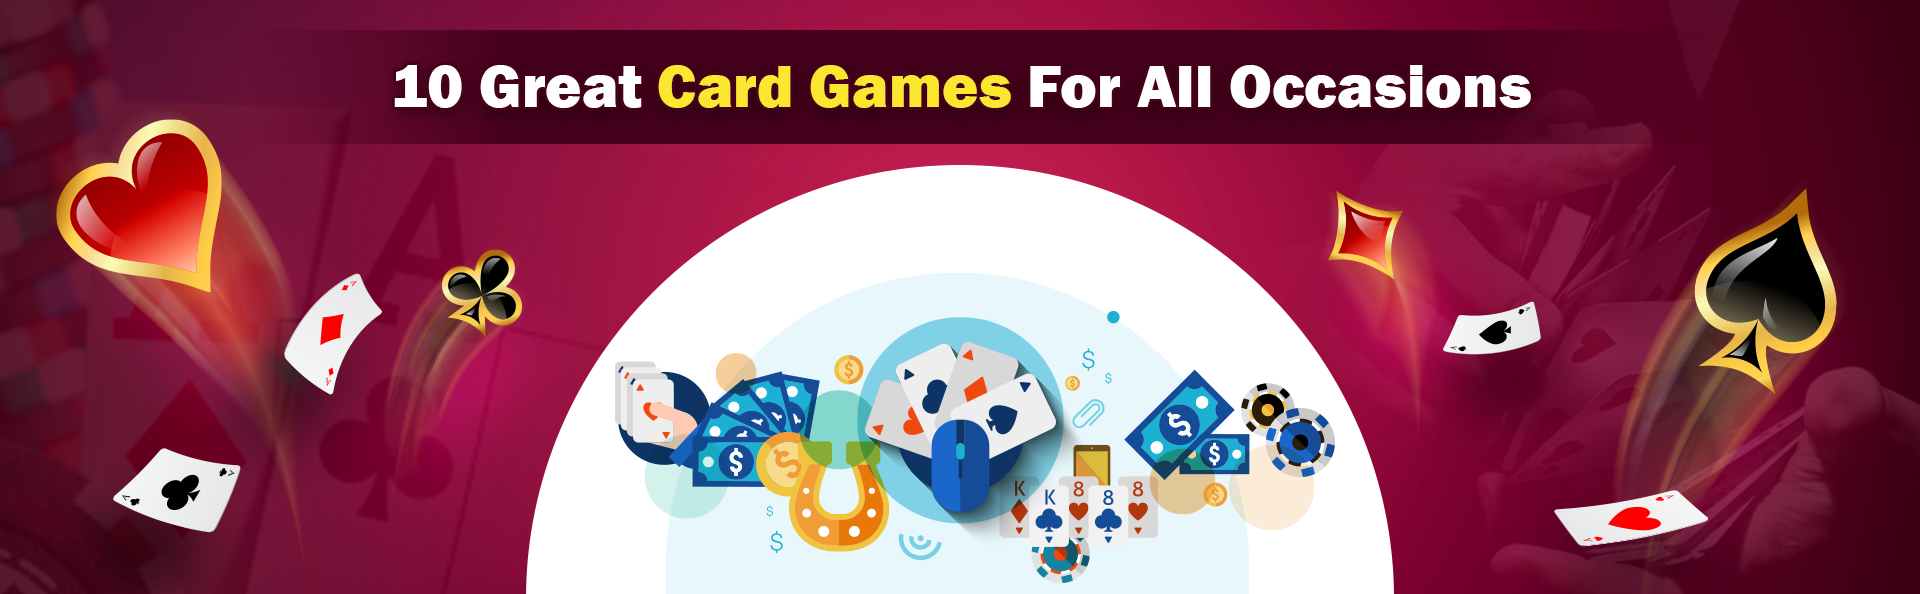 10-Great-Card-Game